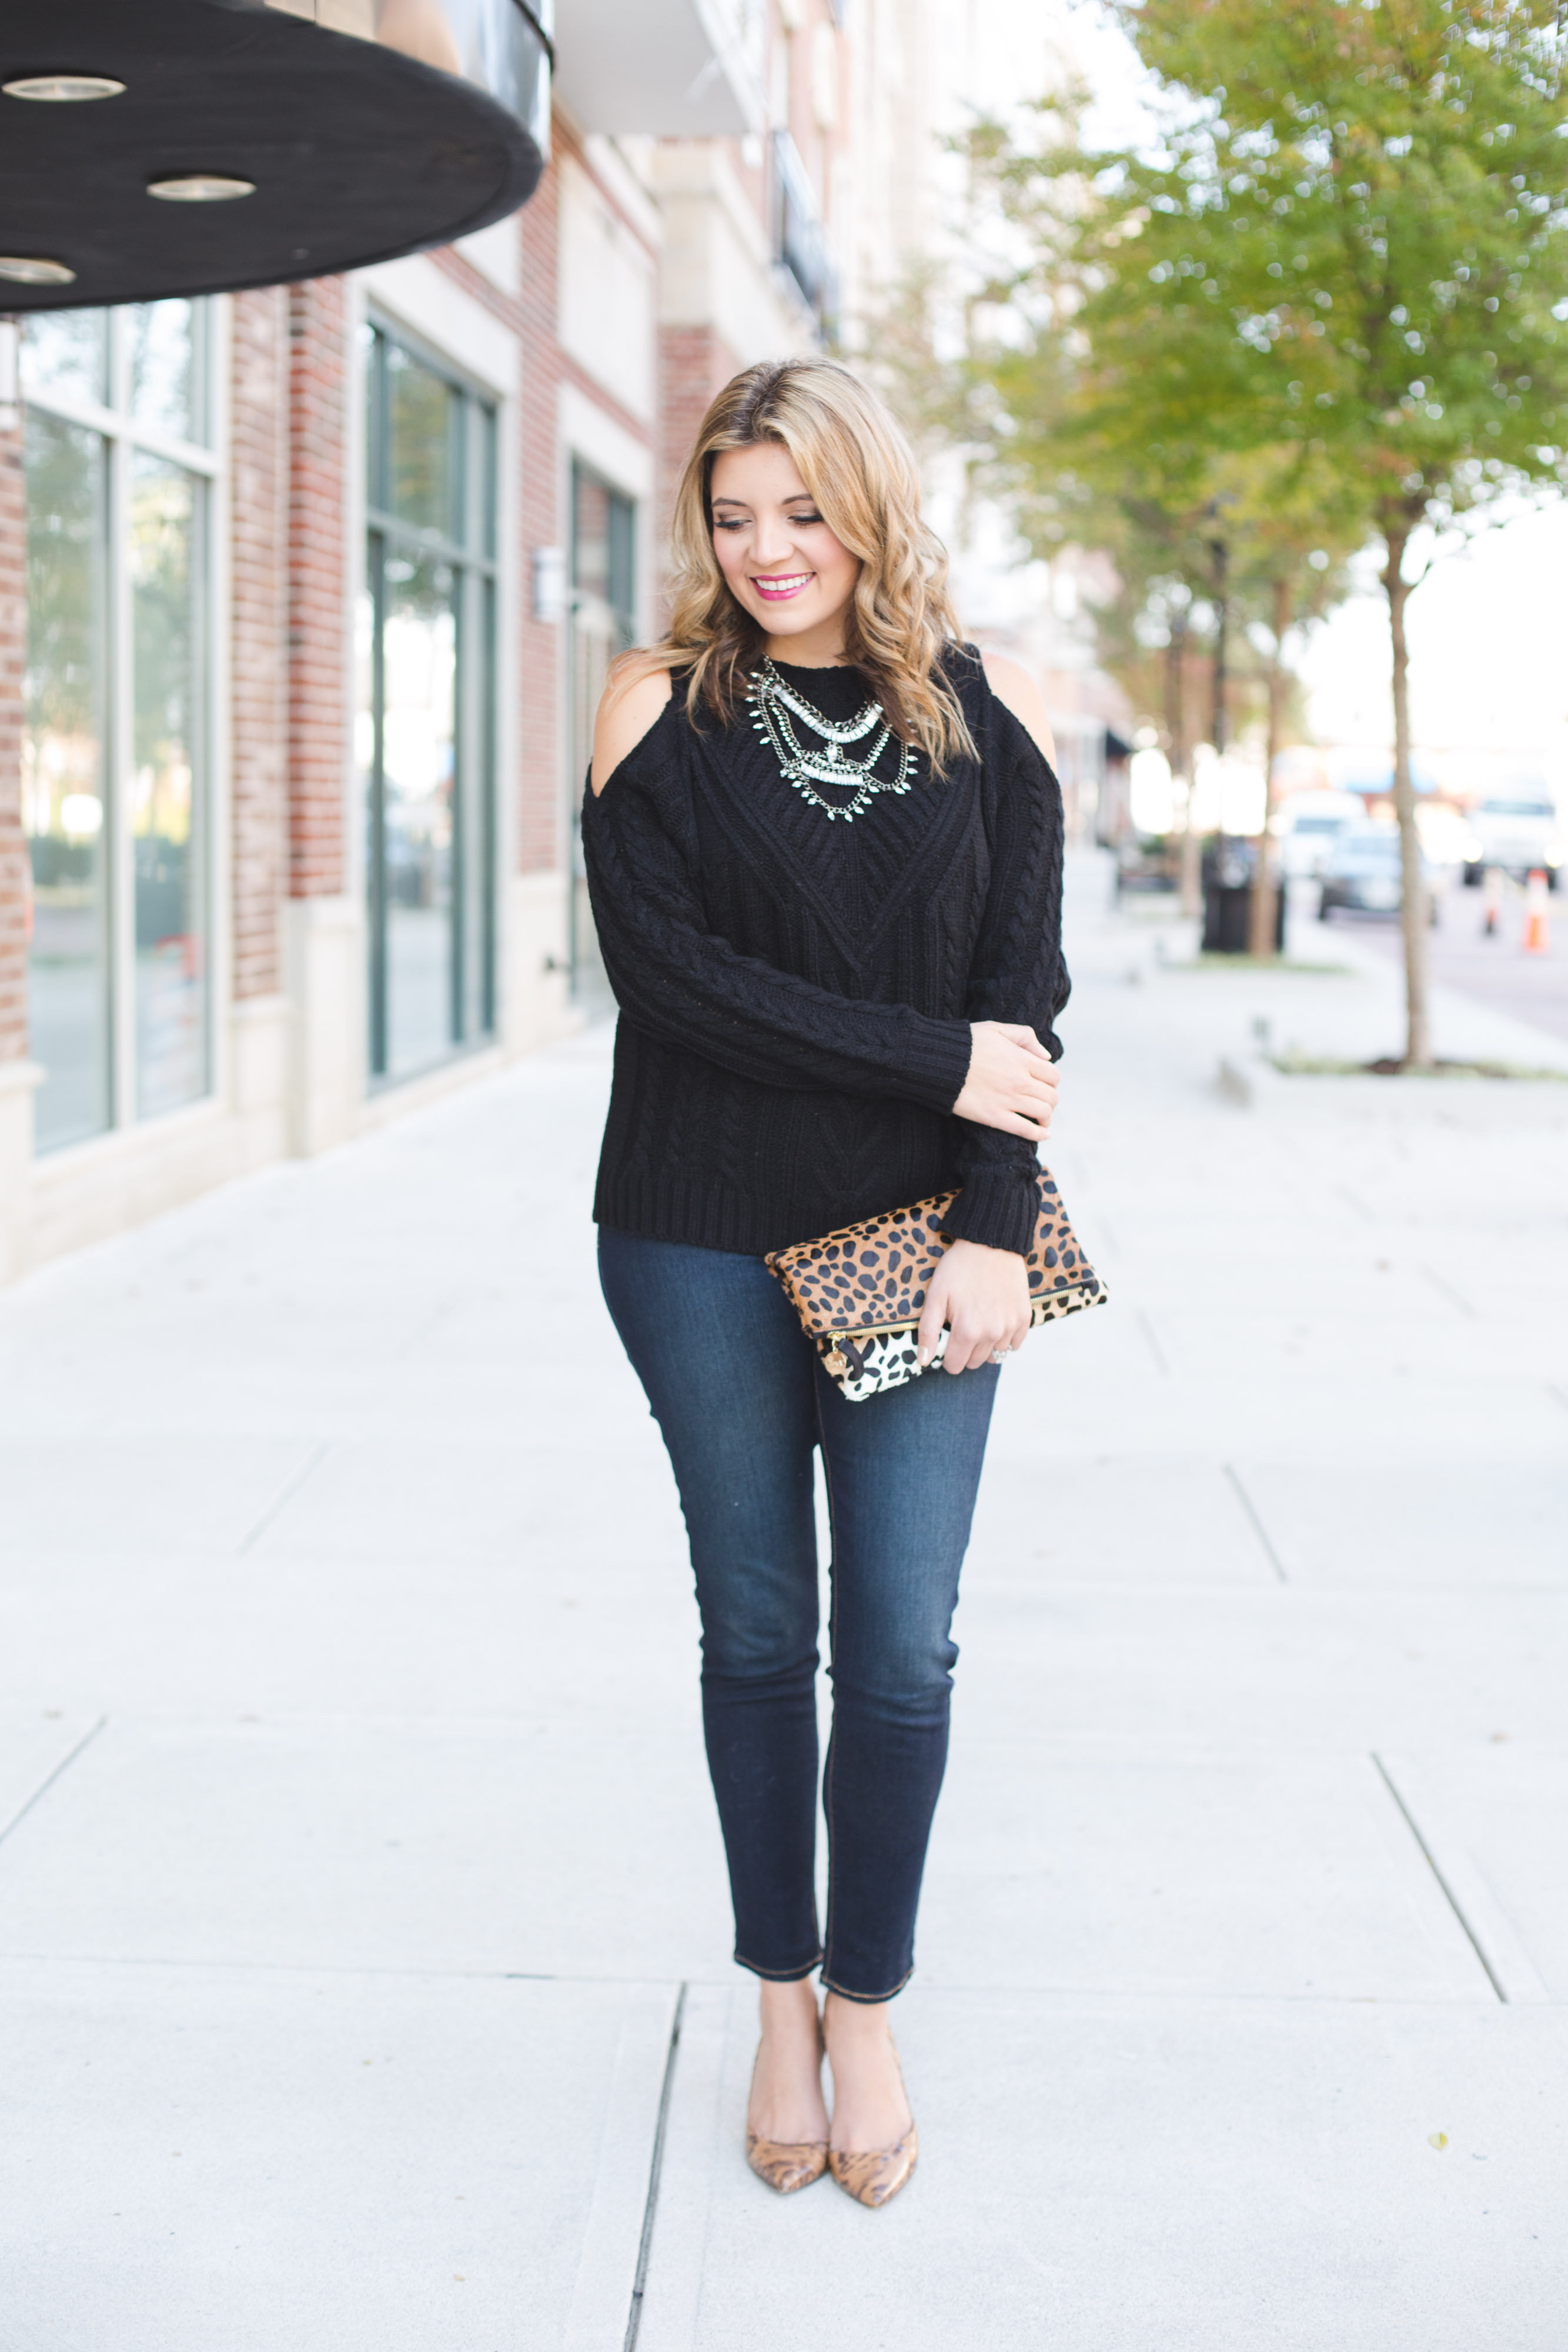 cold shoulder sweater with statement necklace and skinny jeans | www.bylaurenm.com